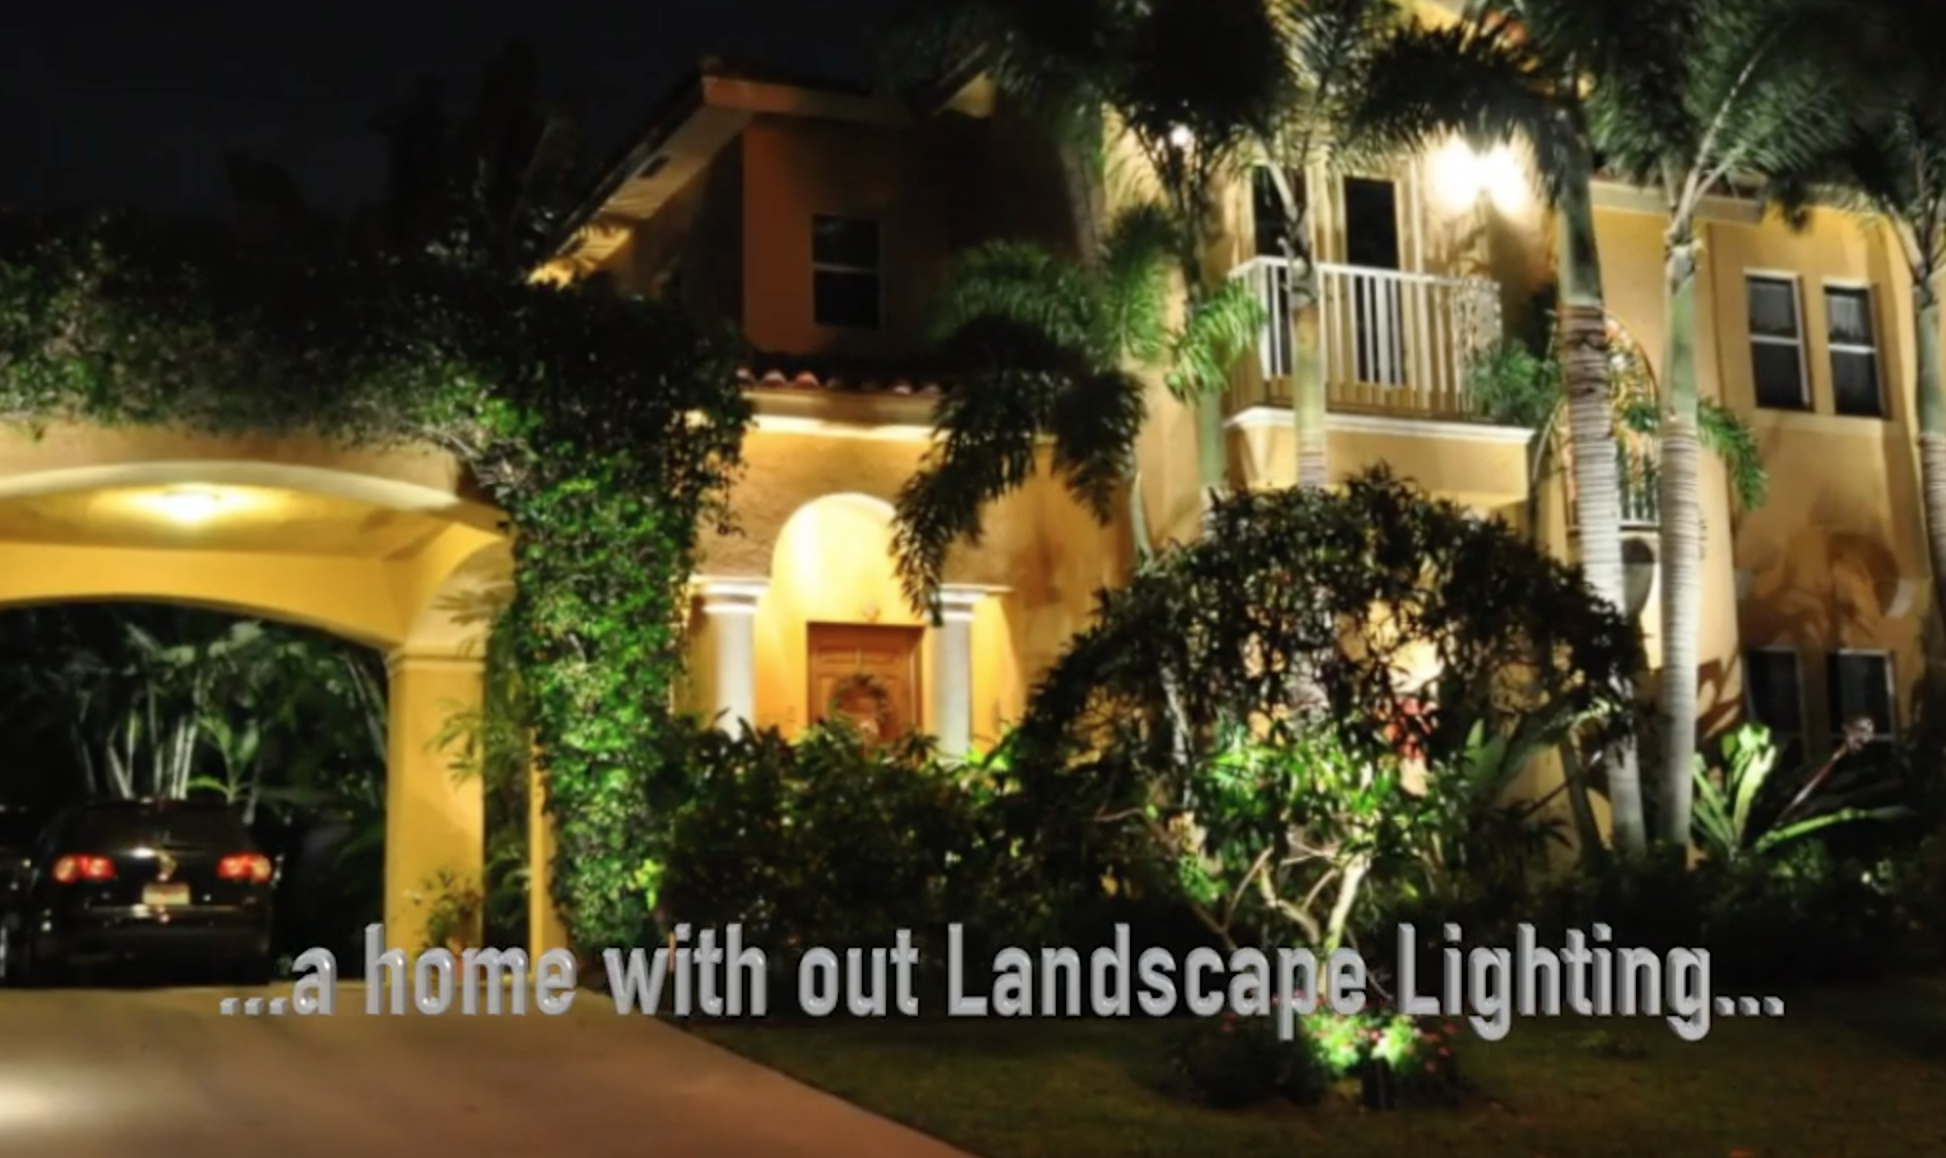 South Florida Palm Beach Low Voltage Outdoor Landscape Lighting by CLA Video